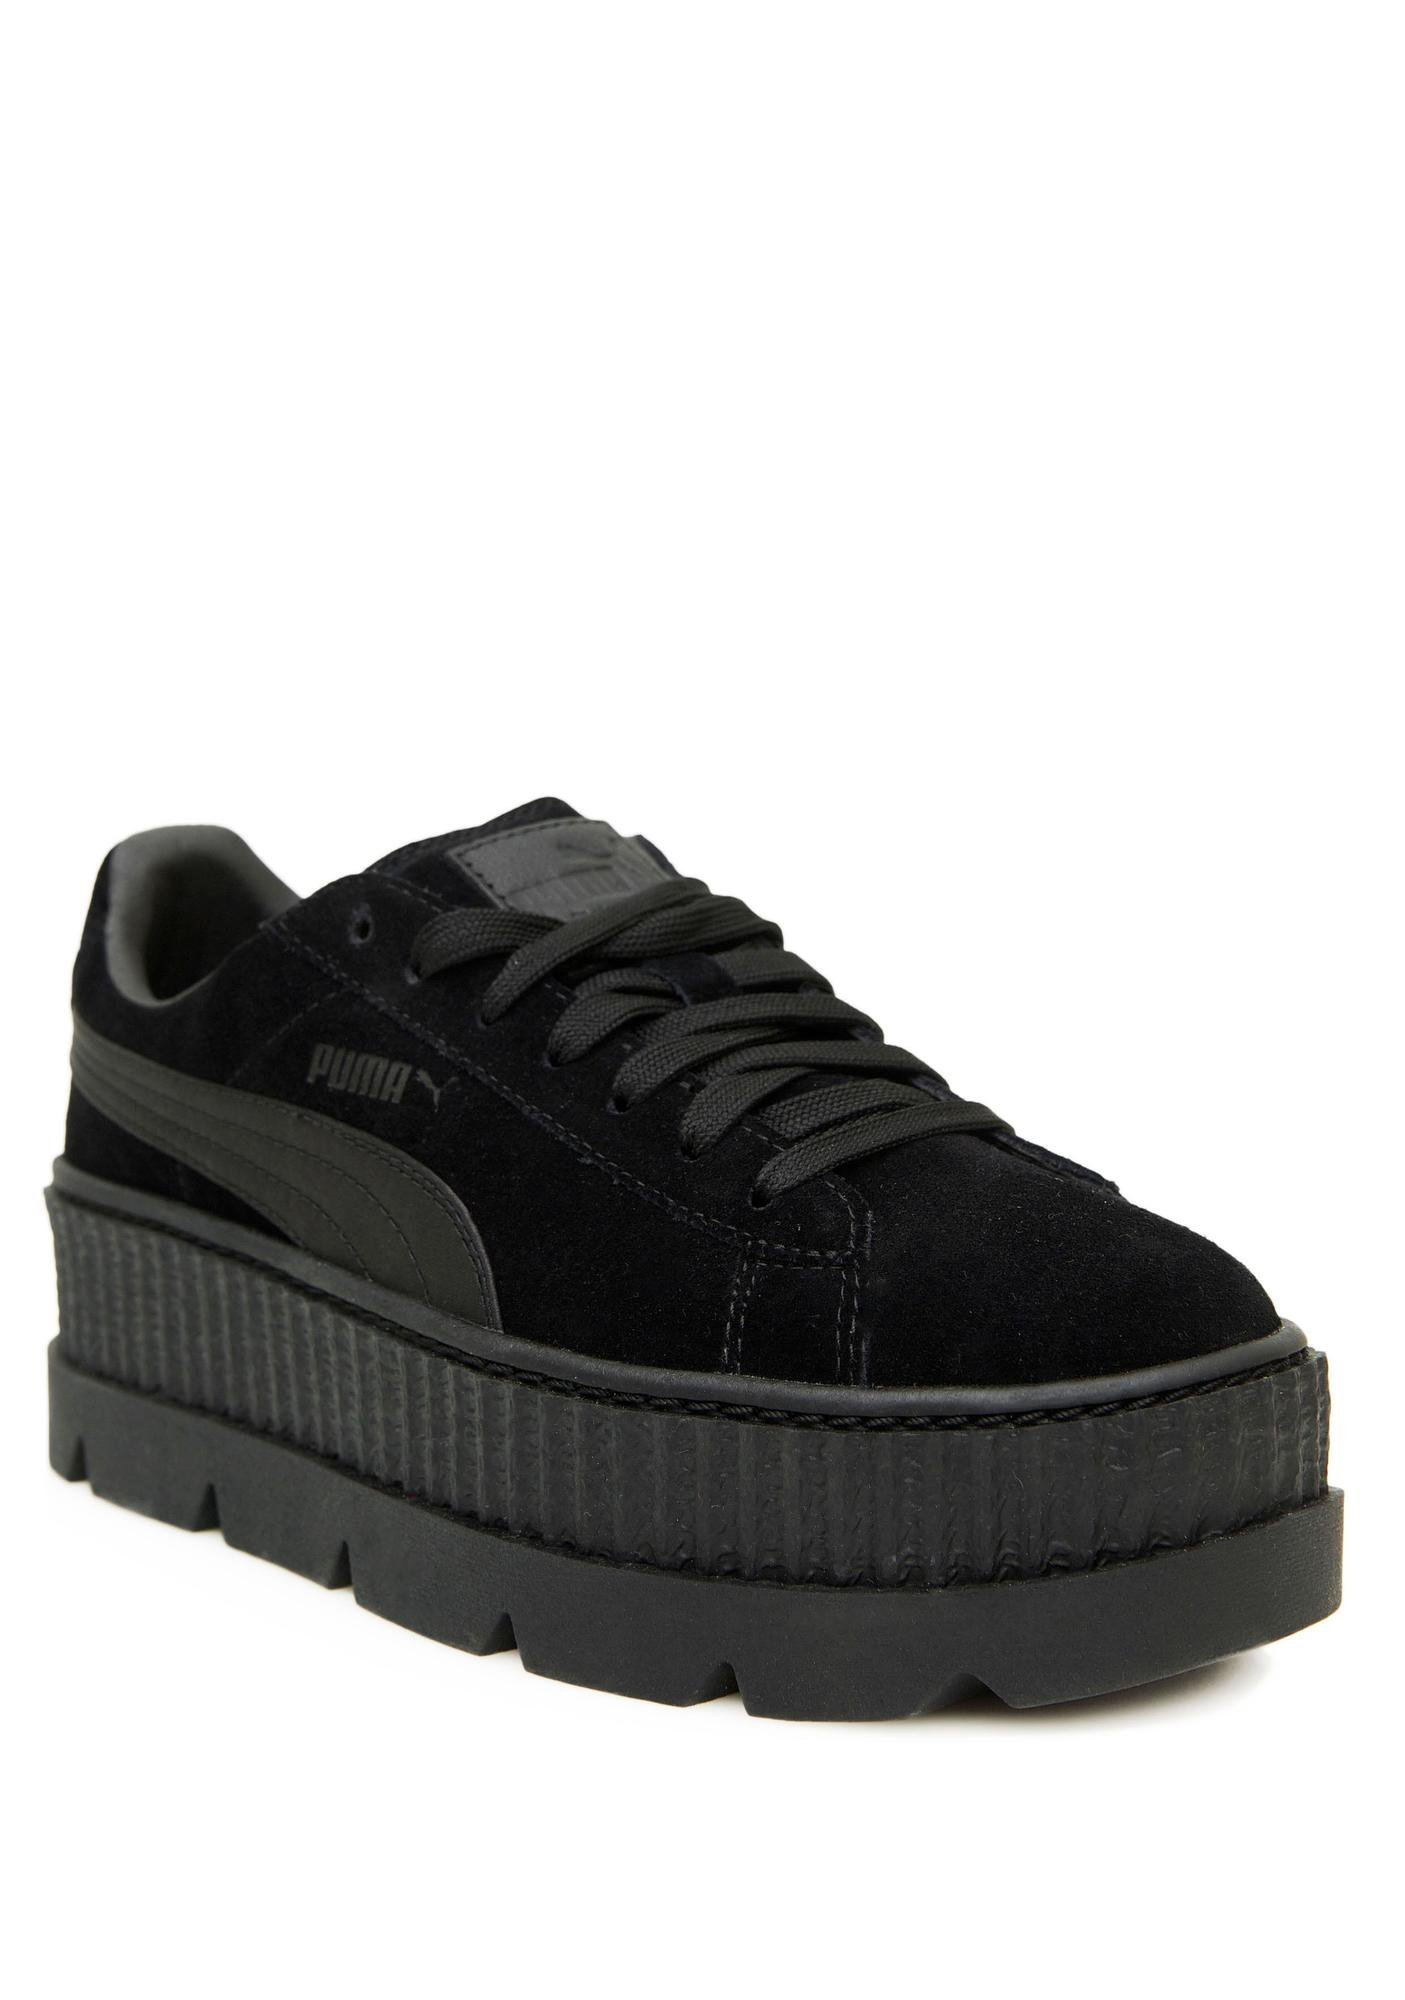 ★PUMA★ONYX FENTY BY RIHANNA CLEATED SUEDEスニーカー 関税込